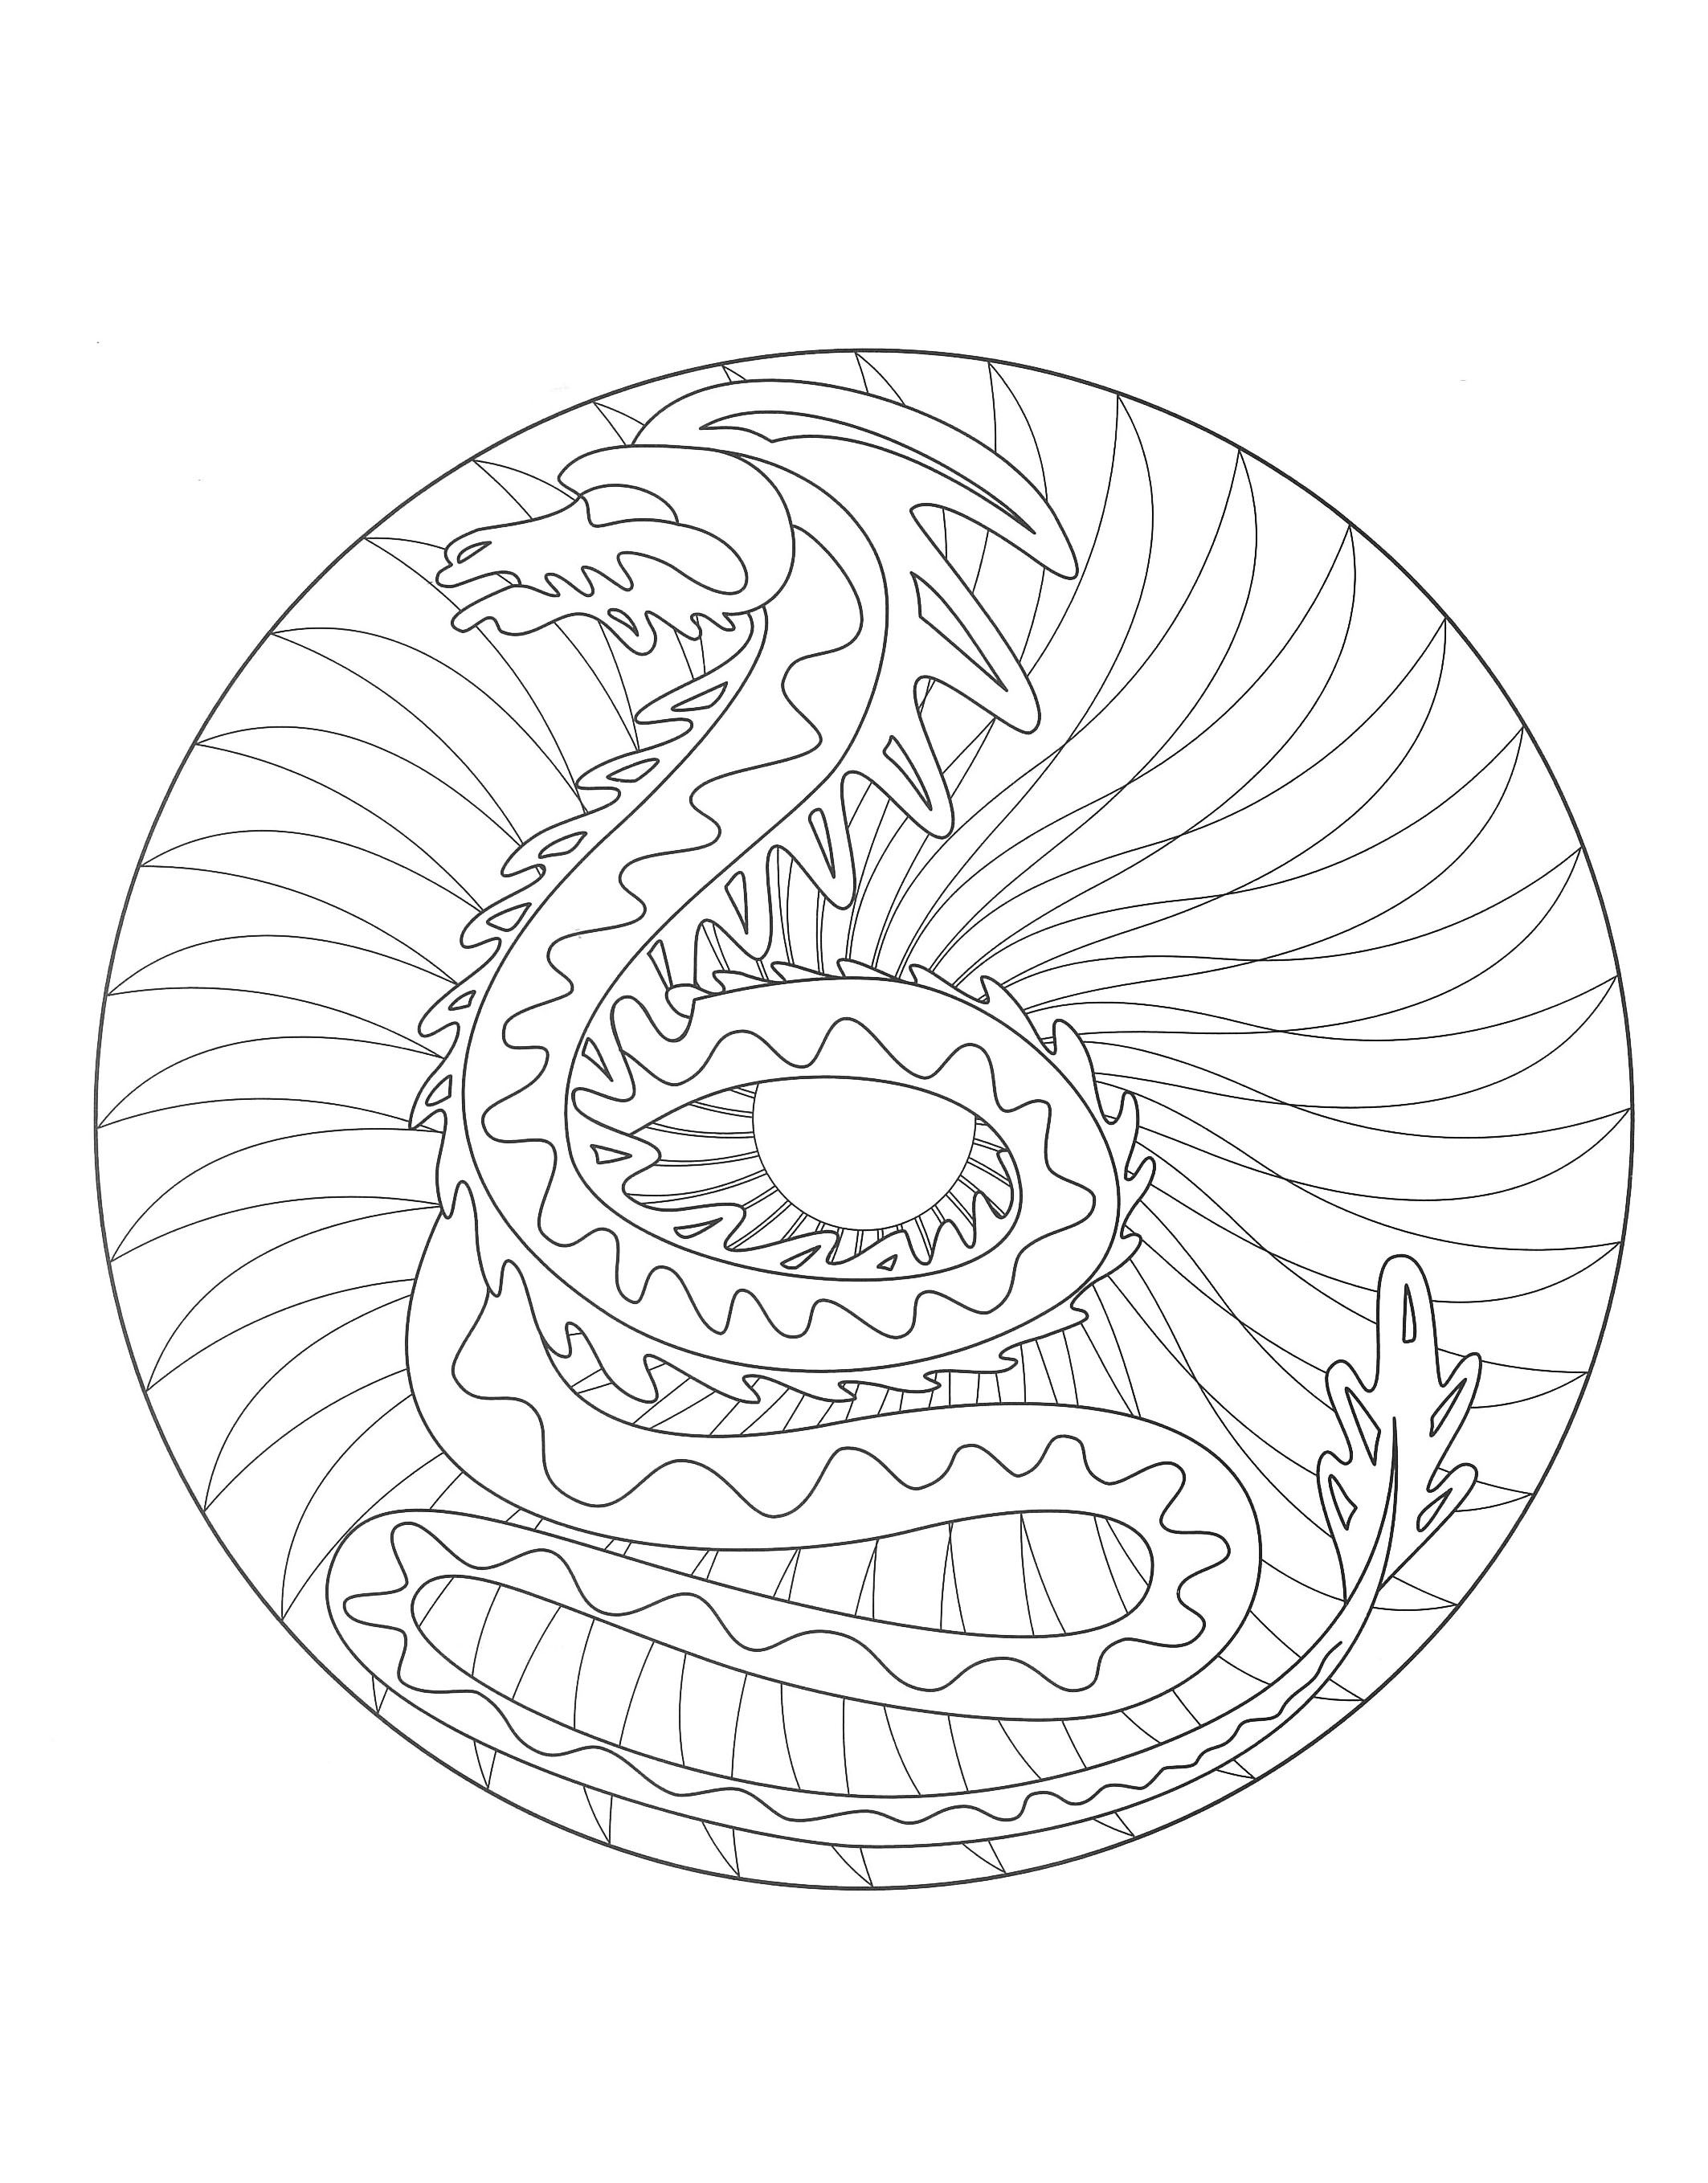 Mandala Dragon 2from The Gallery Mandalas Mandala Coloring Books Coloring Pages Mandala Coloring Pages [ 2717 x 2126 Pixel ]